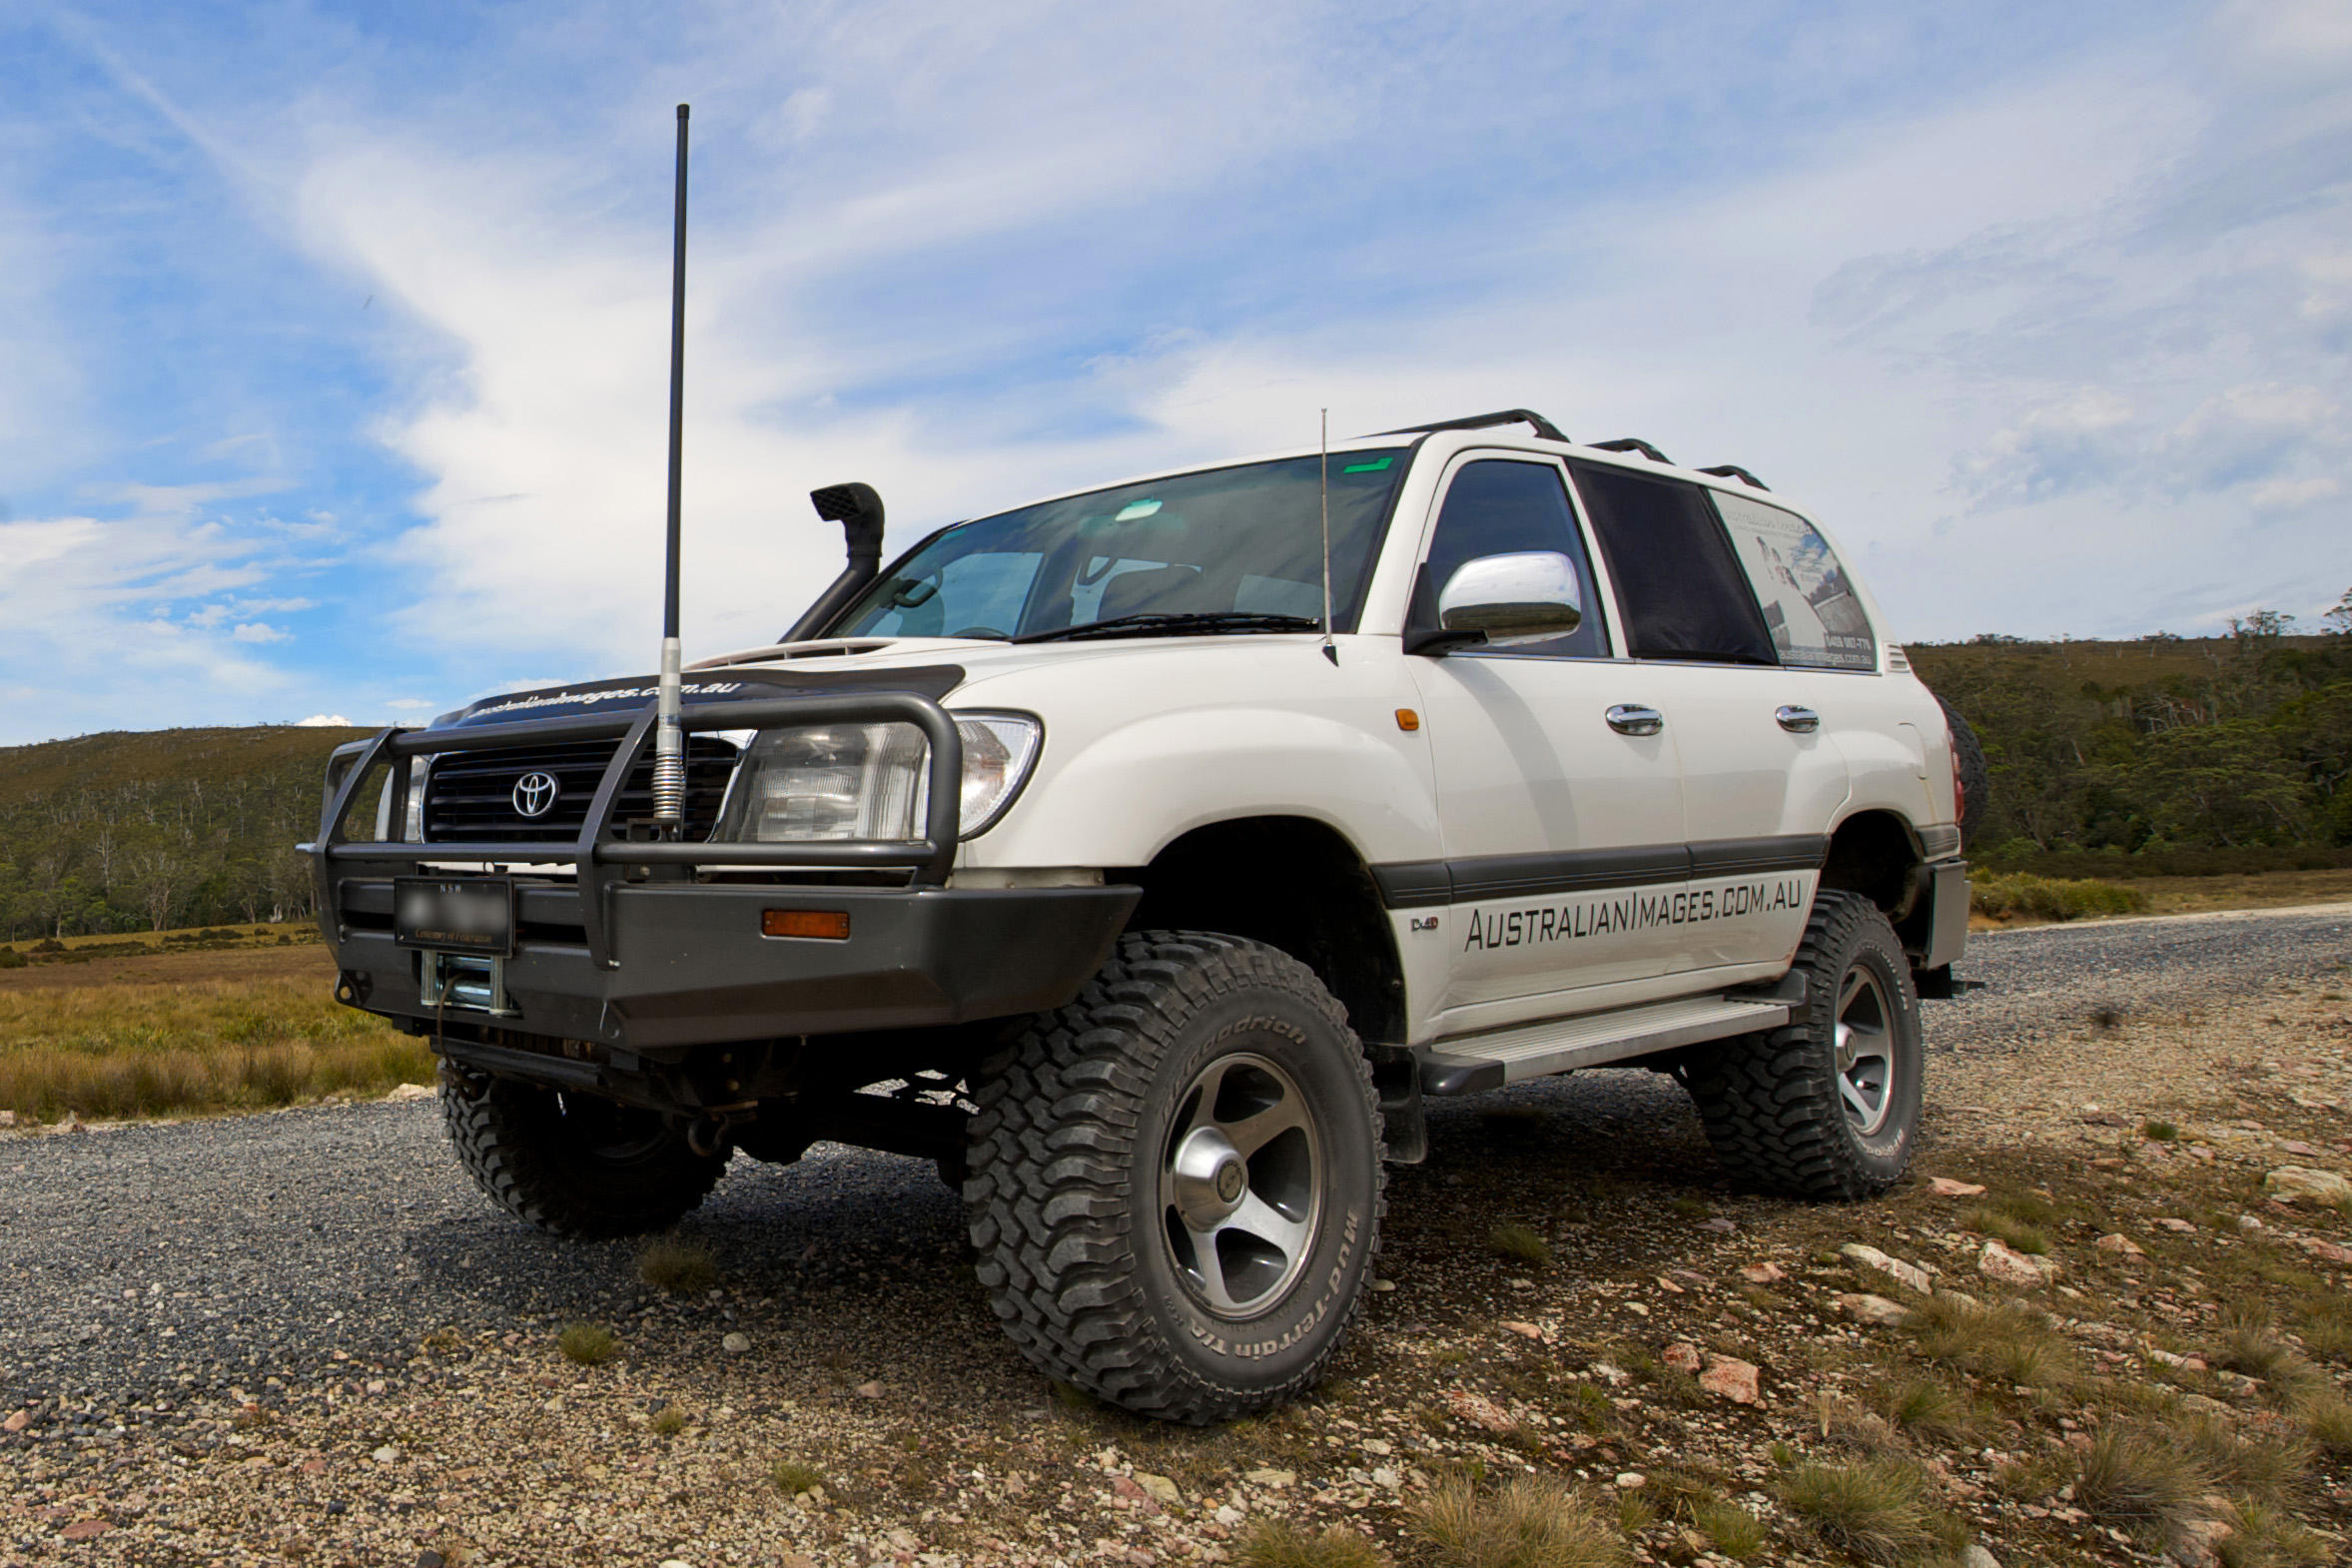 1994 Toyota Land cruiser 80 (j8) – pictures, information and specs